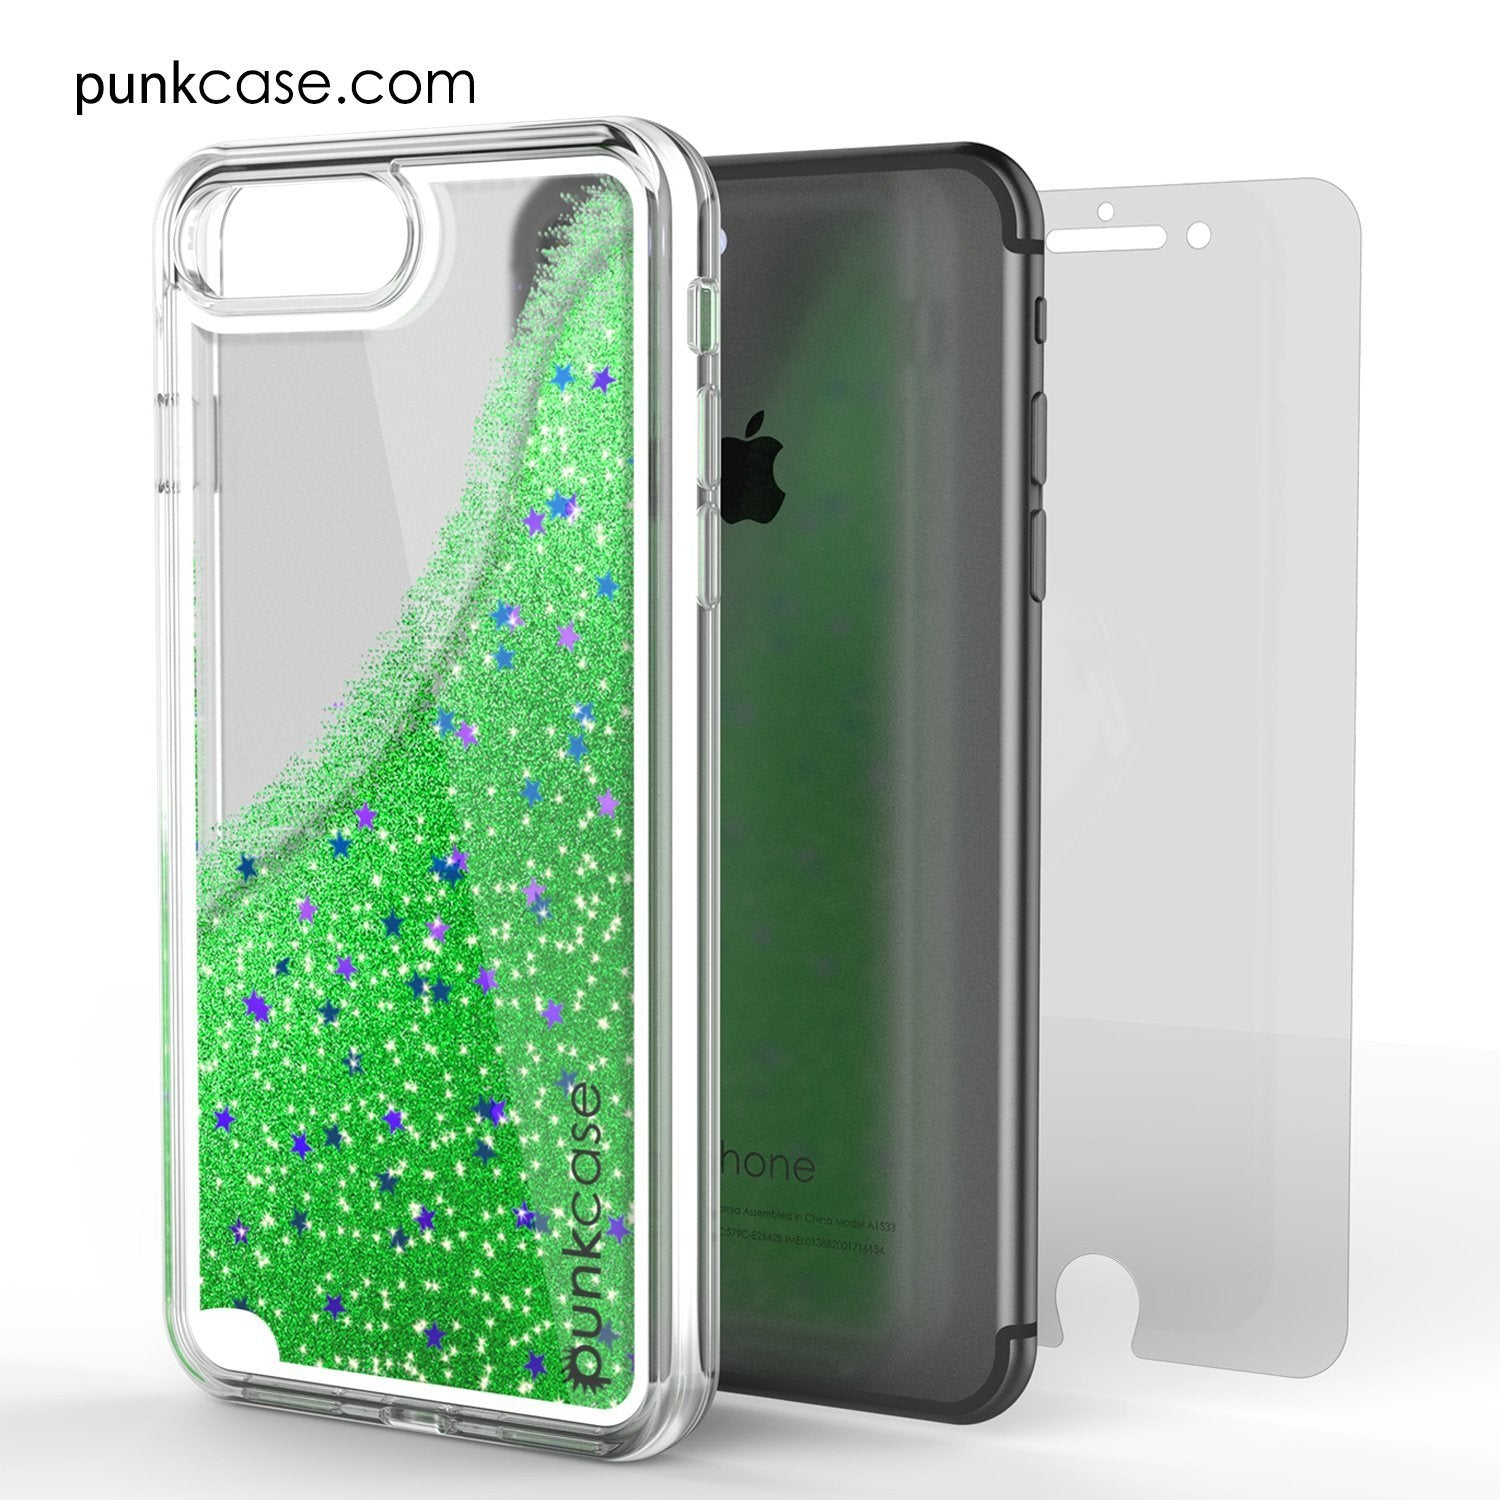 iPhone 8+ Plus Case, PunkCase LIQUID Green Series, Protective Dual Layer Floating Glitter Cover - PunkCase NZ